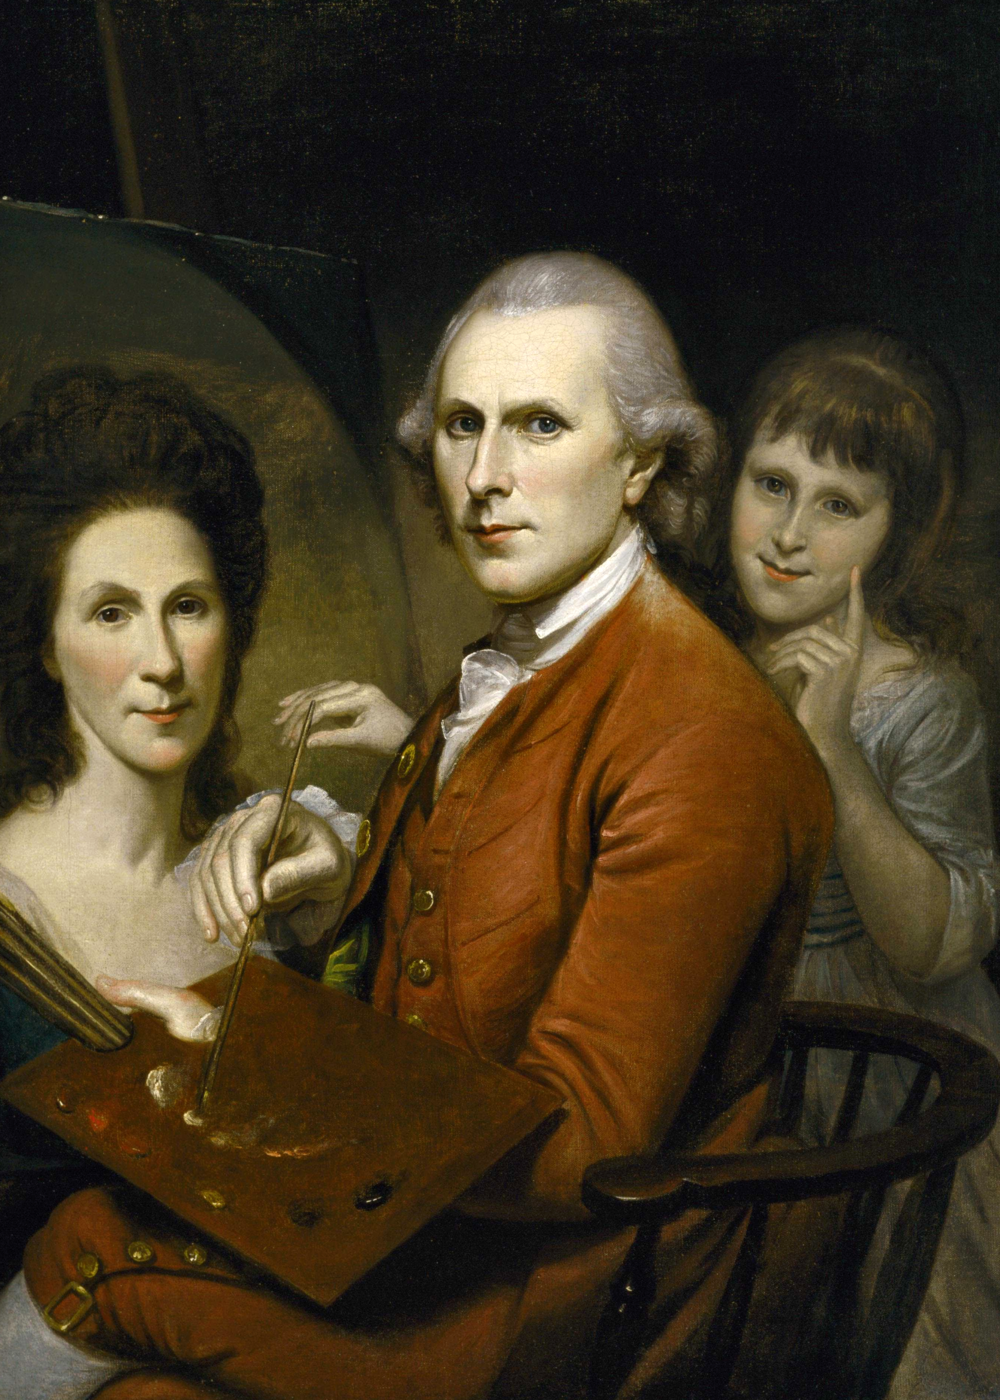 Charles Willson Peale. Self-Portrait with Angelica and Portrait of Rachel, c. 1782-1785 Public domain image from Wikimedia.